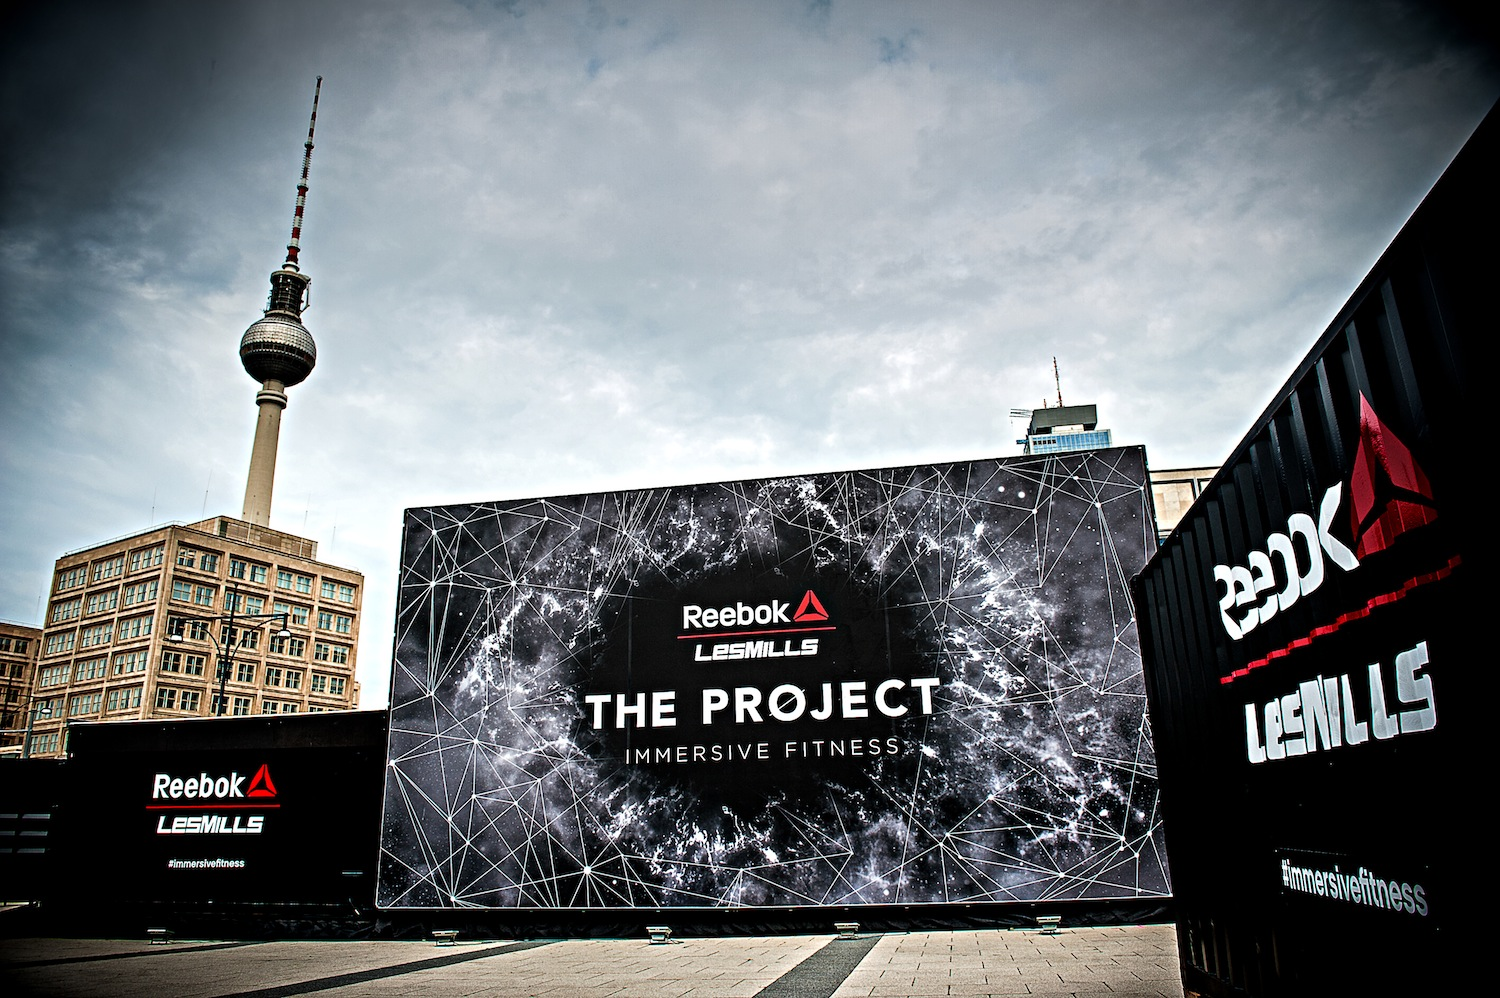 The Project IMMERSIVE FITNESS